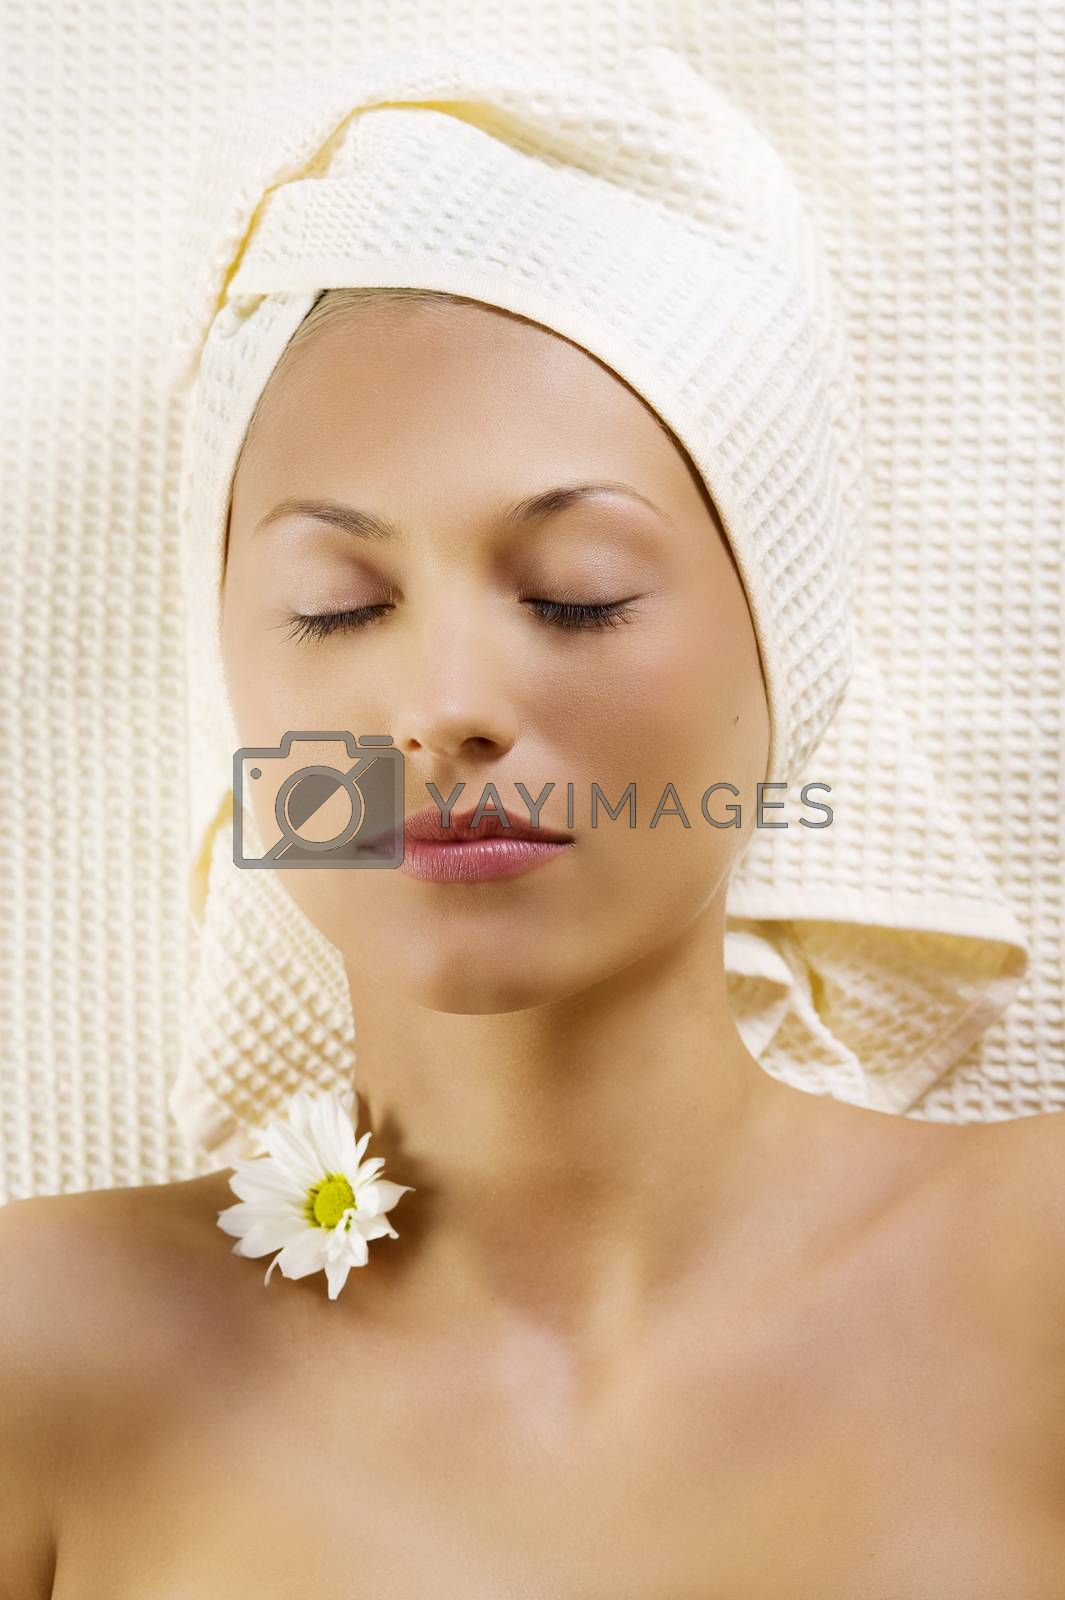 Royalty free image of cute girl in spa with flowers by fotoCD